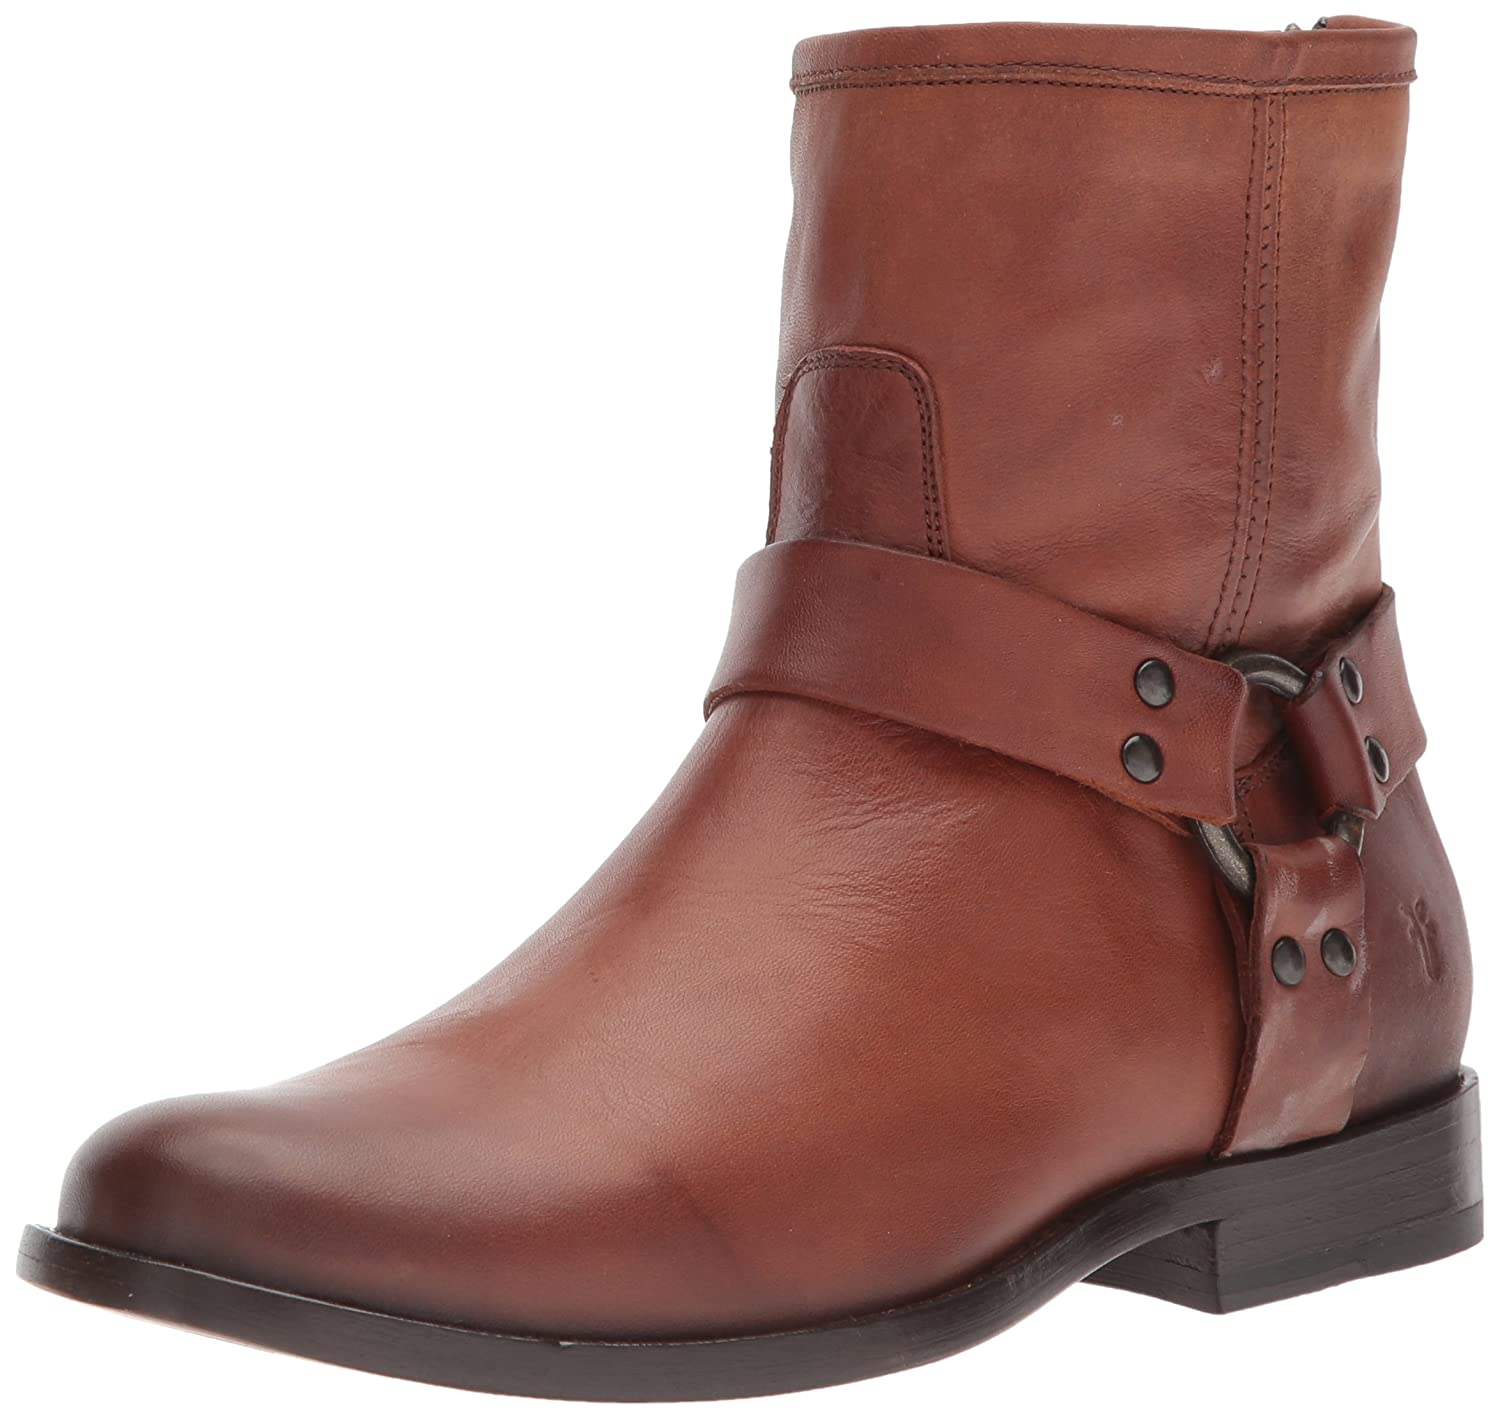 FRYE Women's Phillip Short Harness Boot B06W9F3N8W 9.5 B(M) US|Cognac